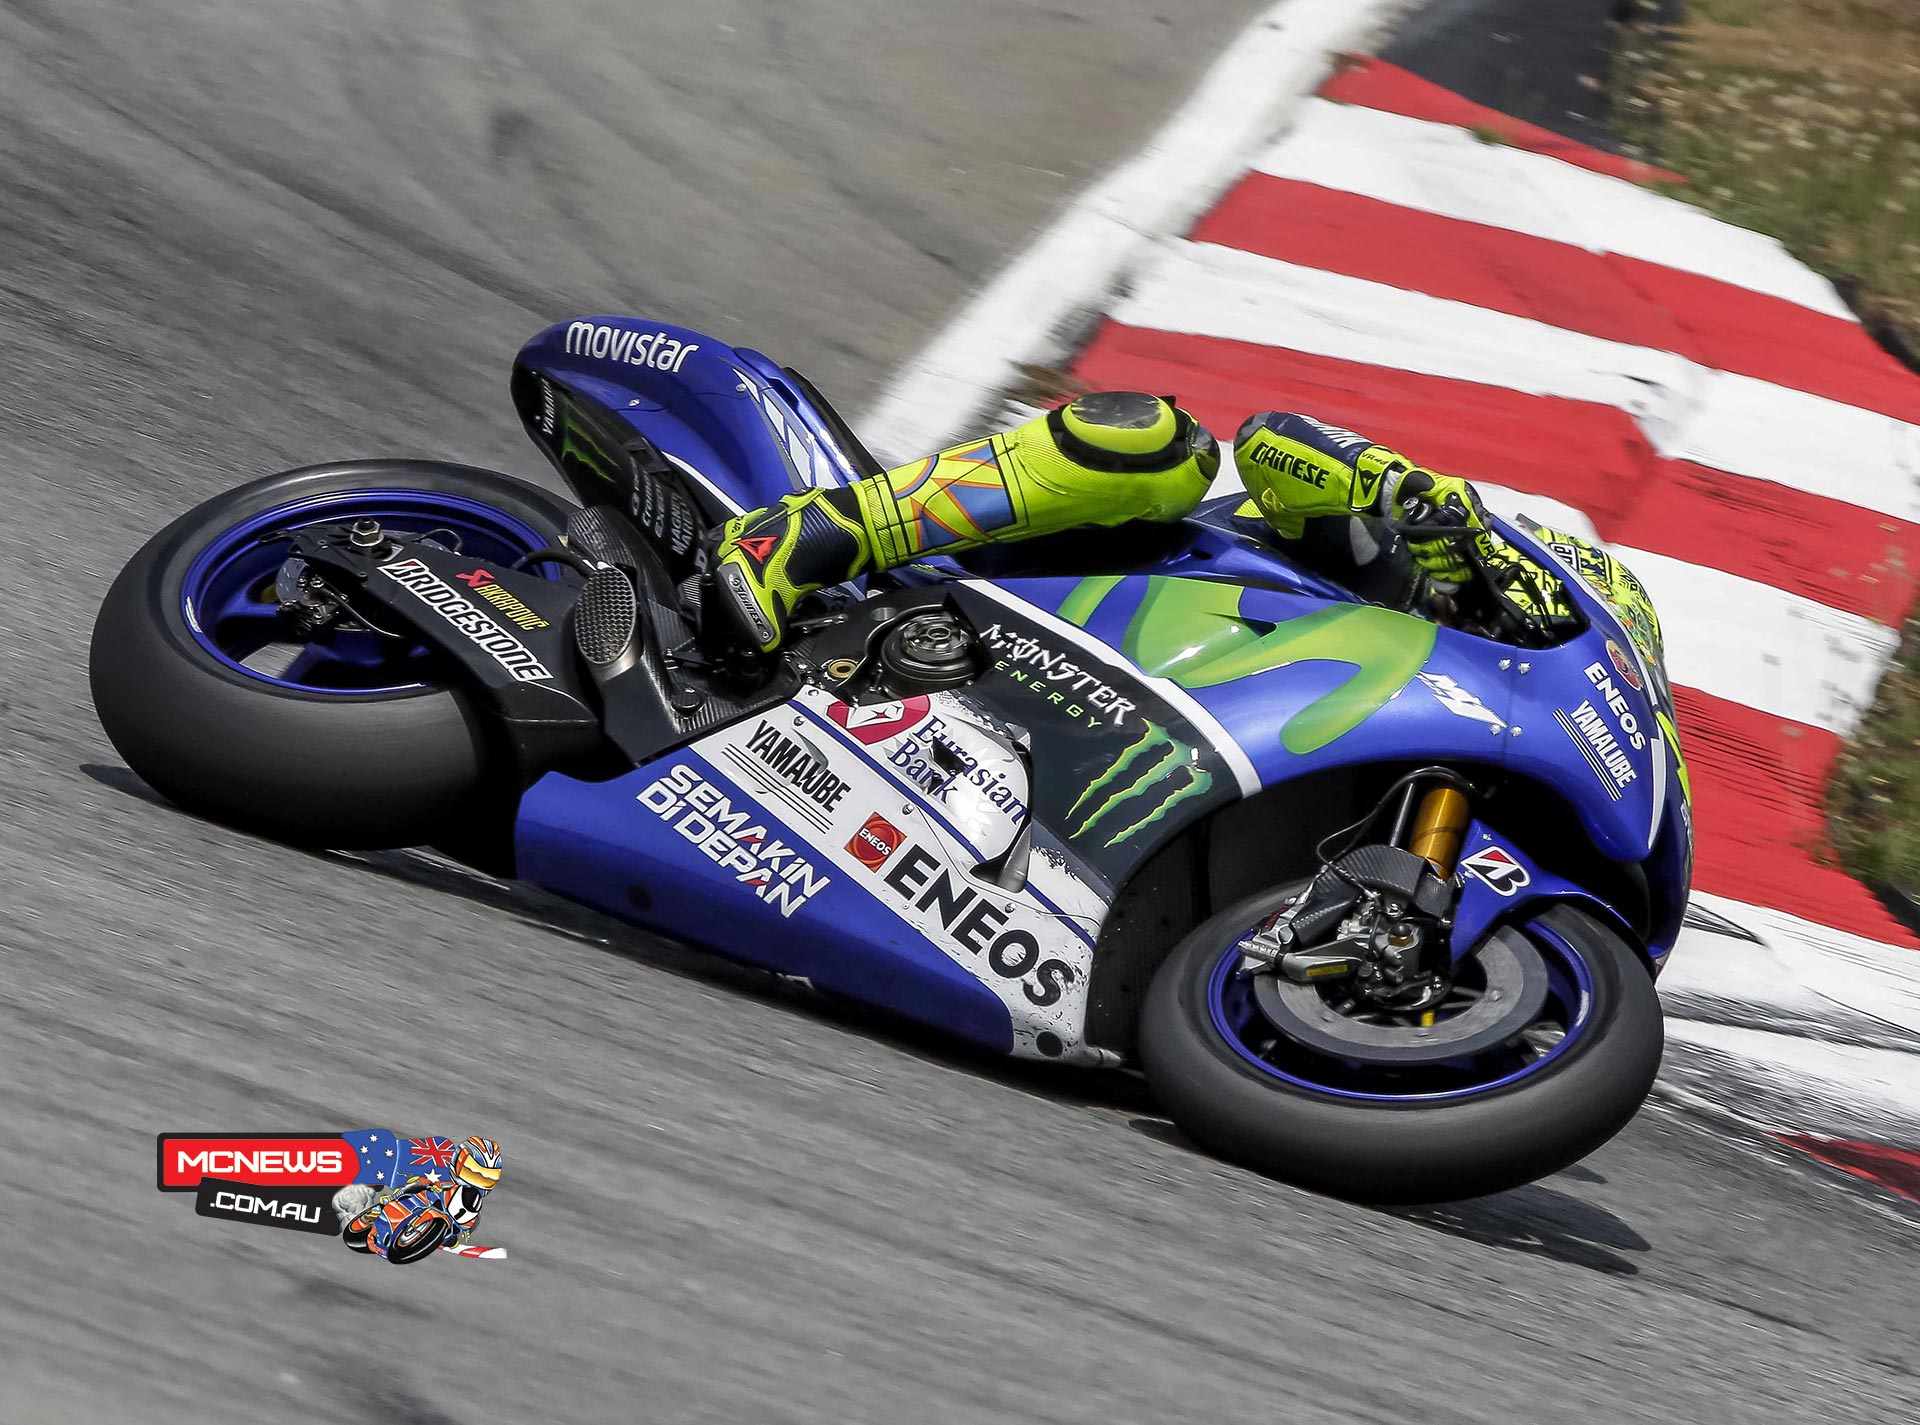 """Valentino Rossi - 1st / 2'00.414 / 54 Laps - """"Everybody in our team was curious about the updated gearbox and the first impression is quite positive, so I'm happy. It doesn't make a huge difference, but it's a small help in a difficult point where we need to improve. The bike is a bit better in braking and corner entry and I think we need to work to understand the maximal potential, but the first test was good. I am happy to finish in the first position because I was in P1 from this morning, so it's a good first day. It's important for us to make some kilometers on the wet. I don't really like the feeling with the bike on the wet and last year I struggled a bit. We already improved a bit today, but we need to do some more testing and make some more kilometers."""""""